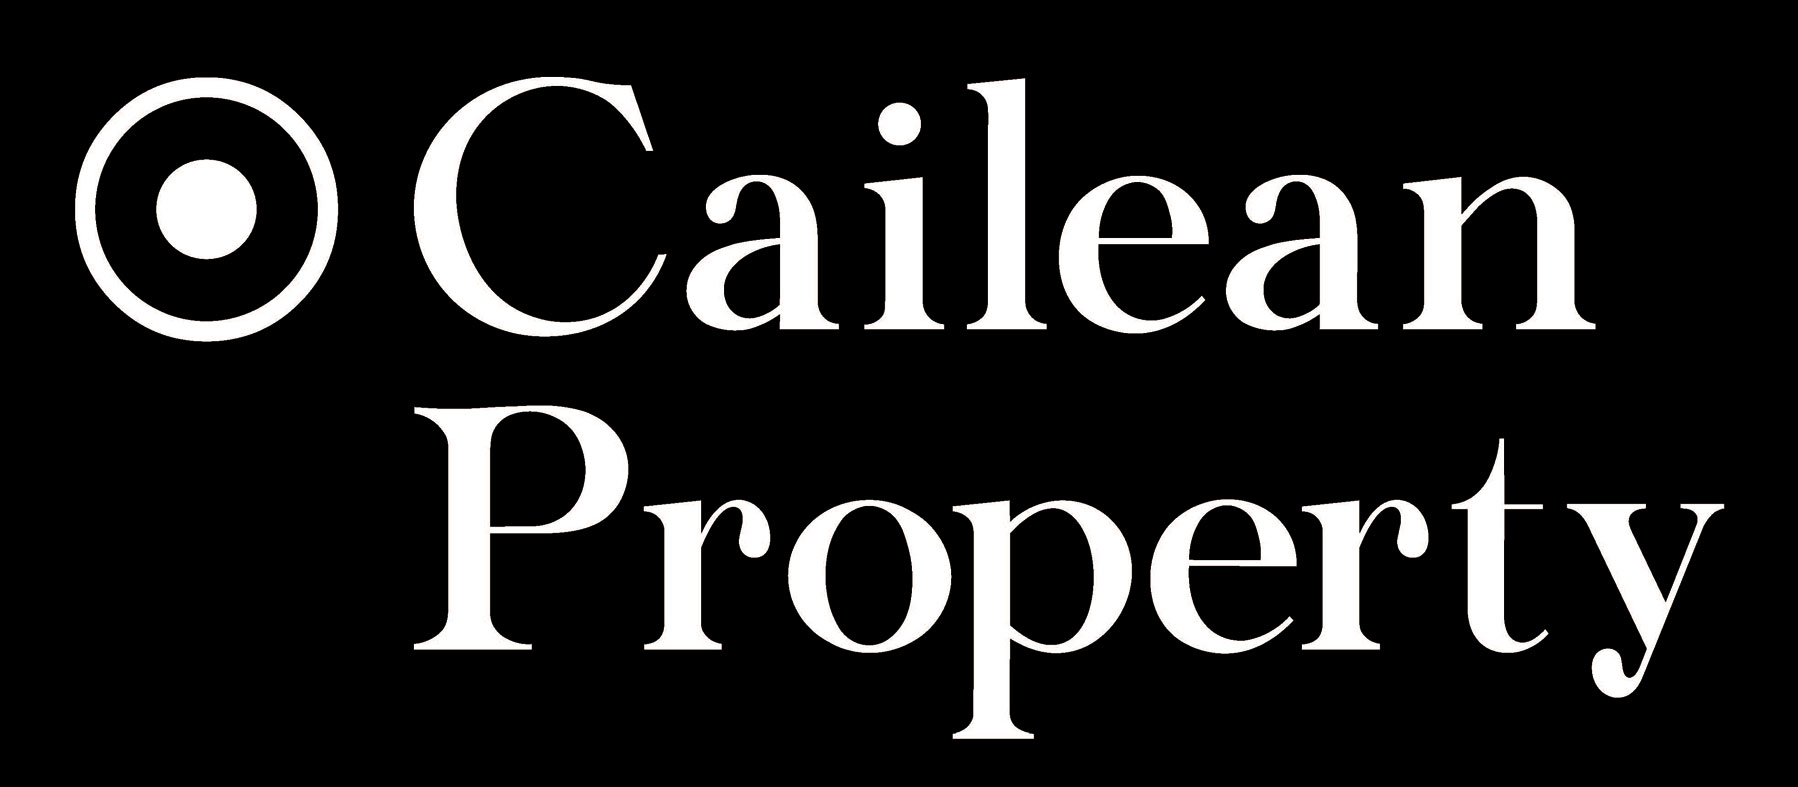 Cailean property